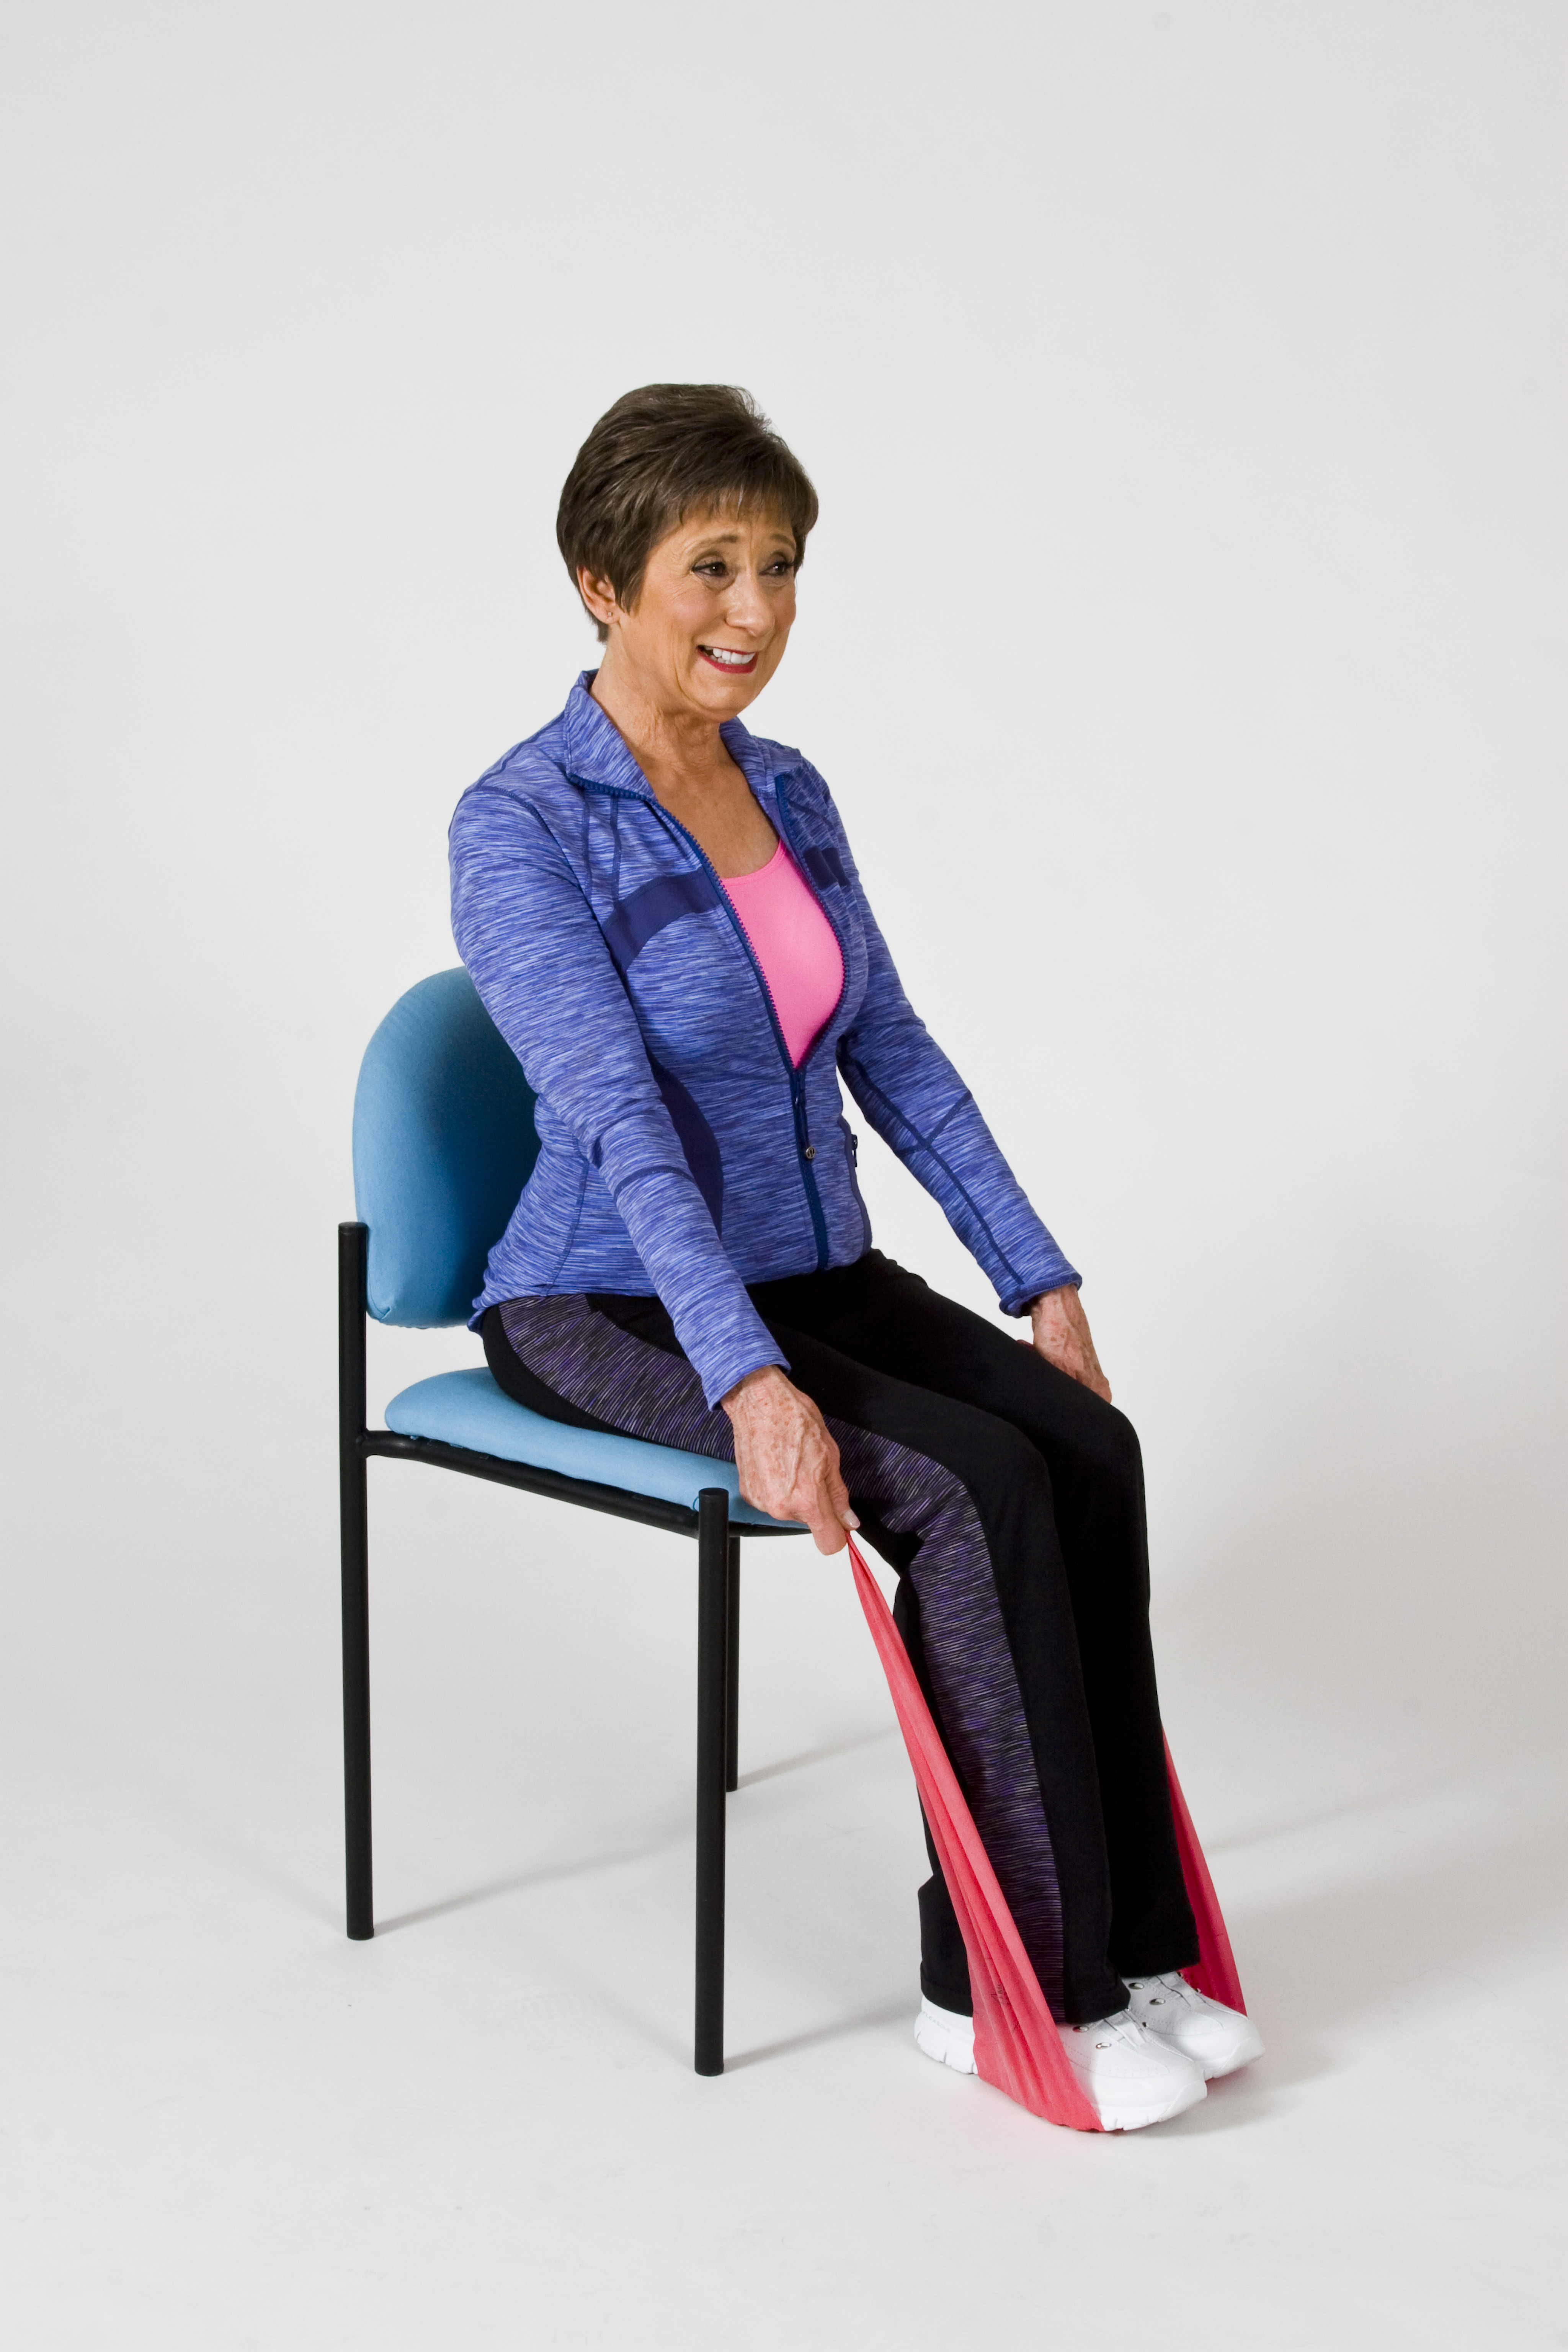 Band Posture Chair - Mary ann wilson rn shows how strength training can be done in a chair